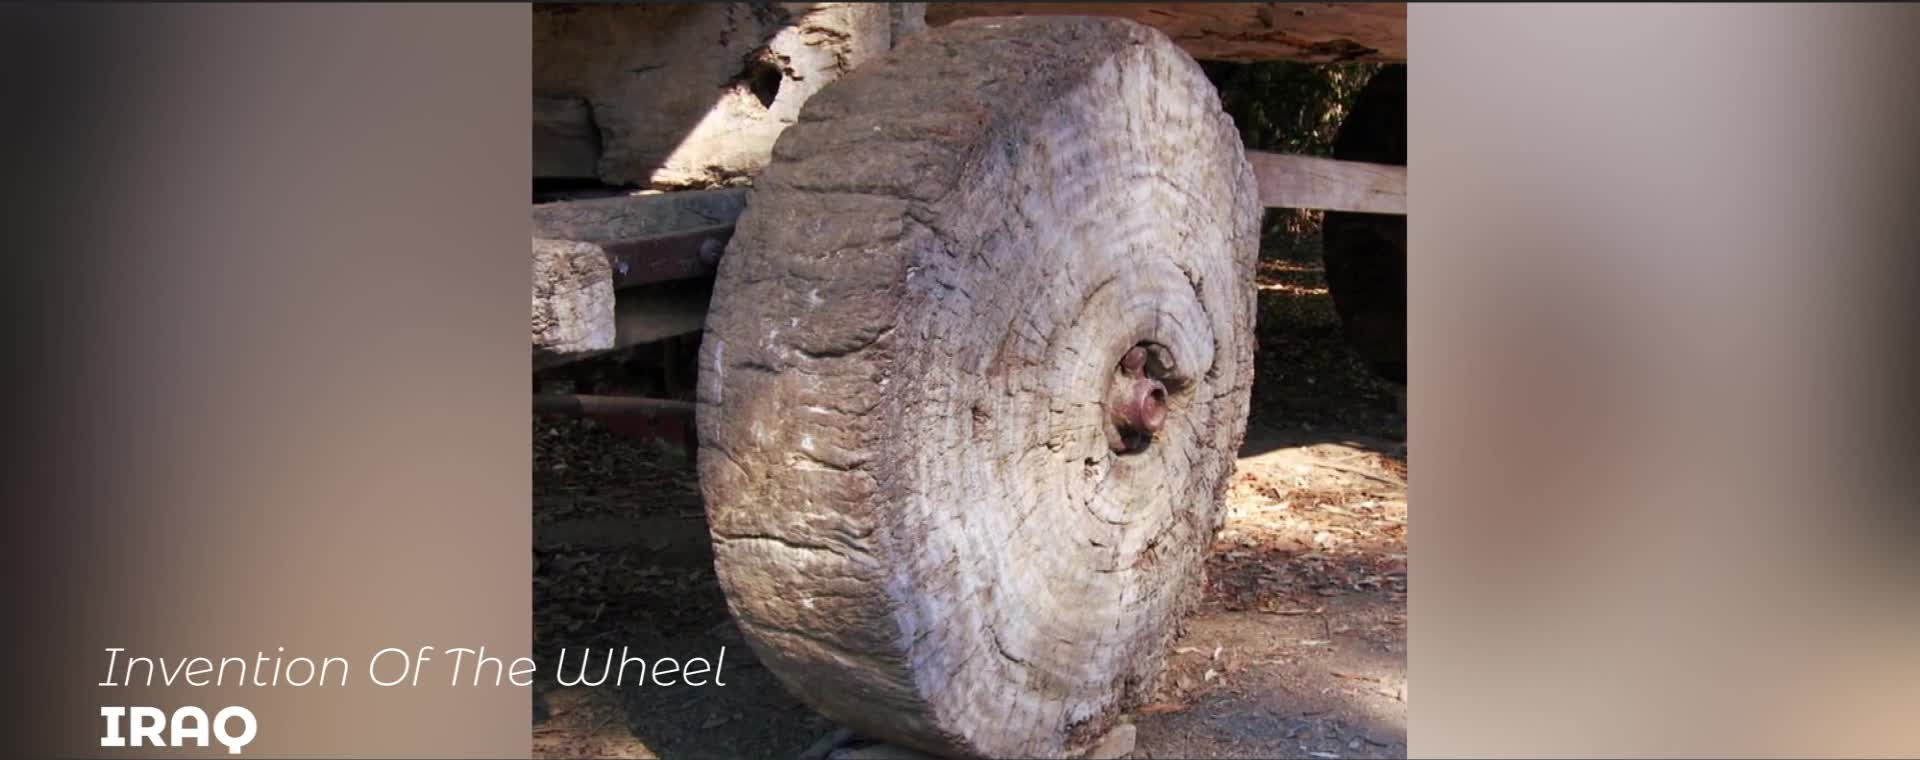 INVENTION OF THE WHEEL